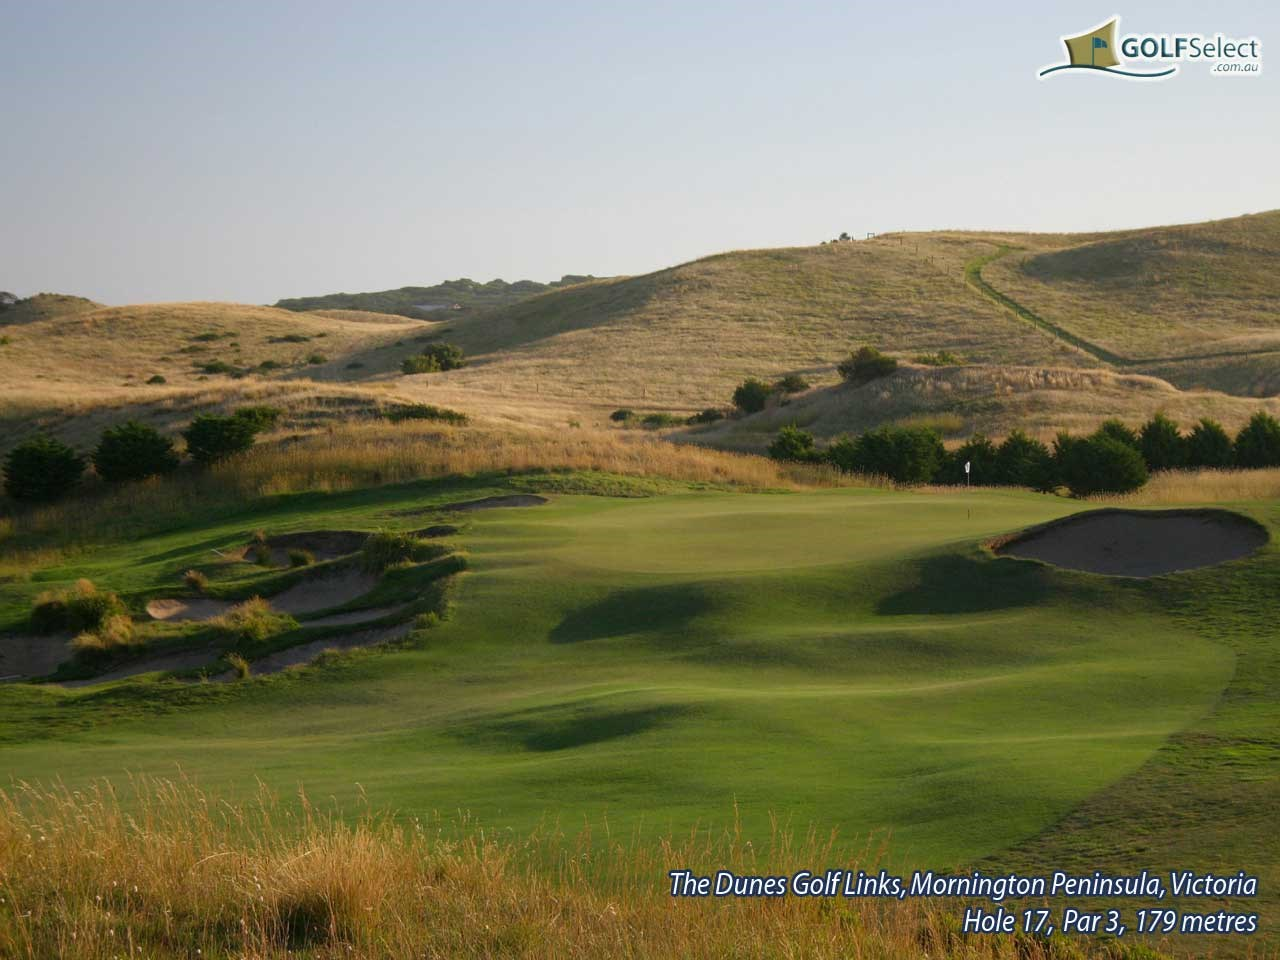 The Dunes Golf Links Hole 17, Par 3, 179 metres